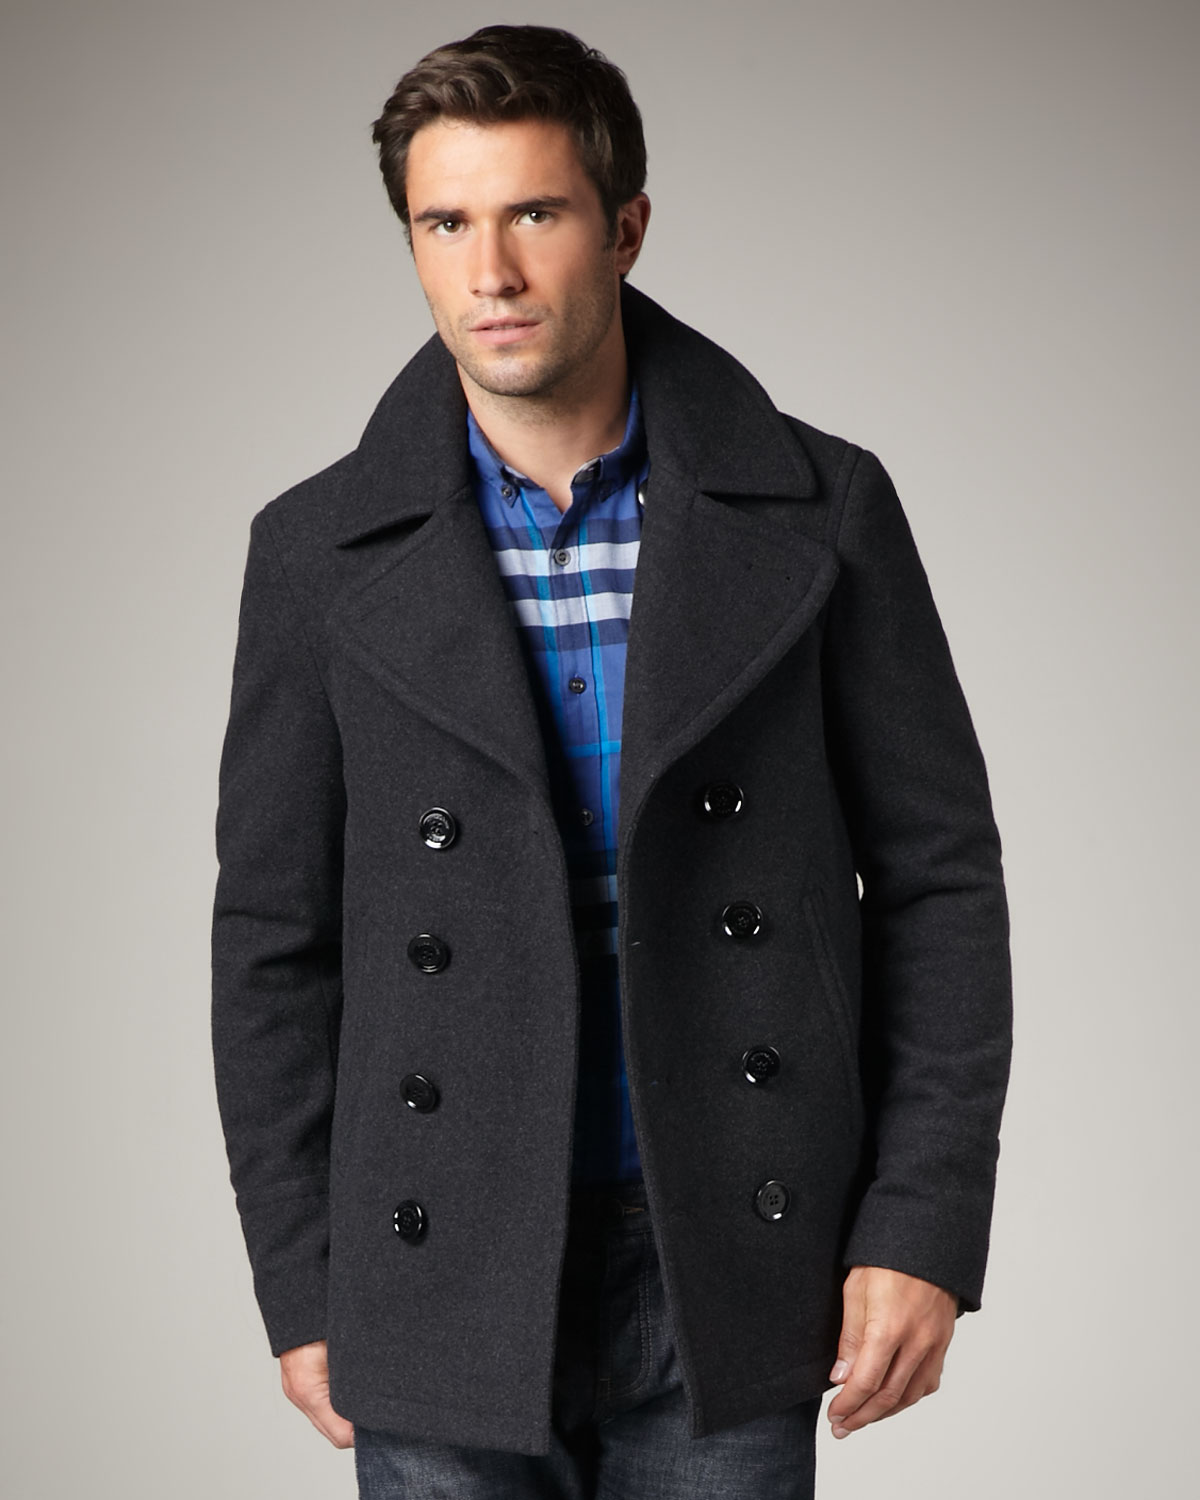 Shop men's coats from Burberry. The range includes both single-breasted and double-breasted designs alongside trench coats, parkas, and more. Wool Blend Pea Coat. 2 colours. $1, Click the star icon to add this item to your Favourites. Click the star icon to .